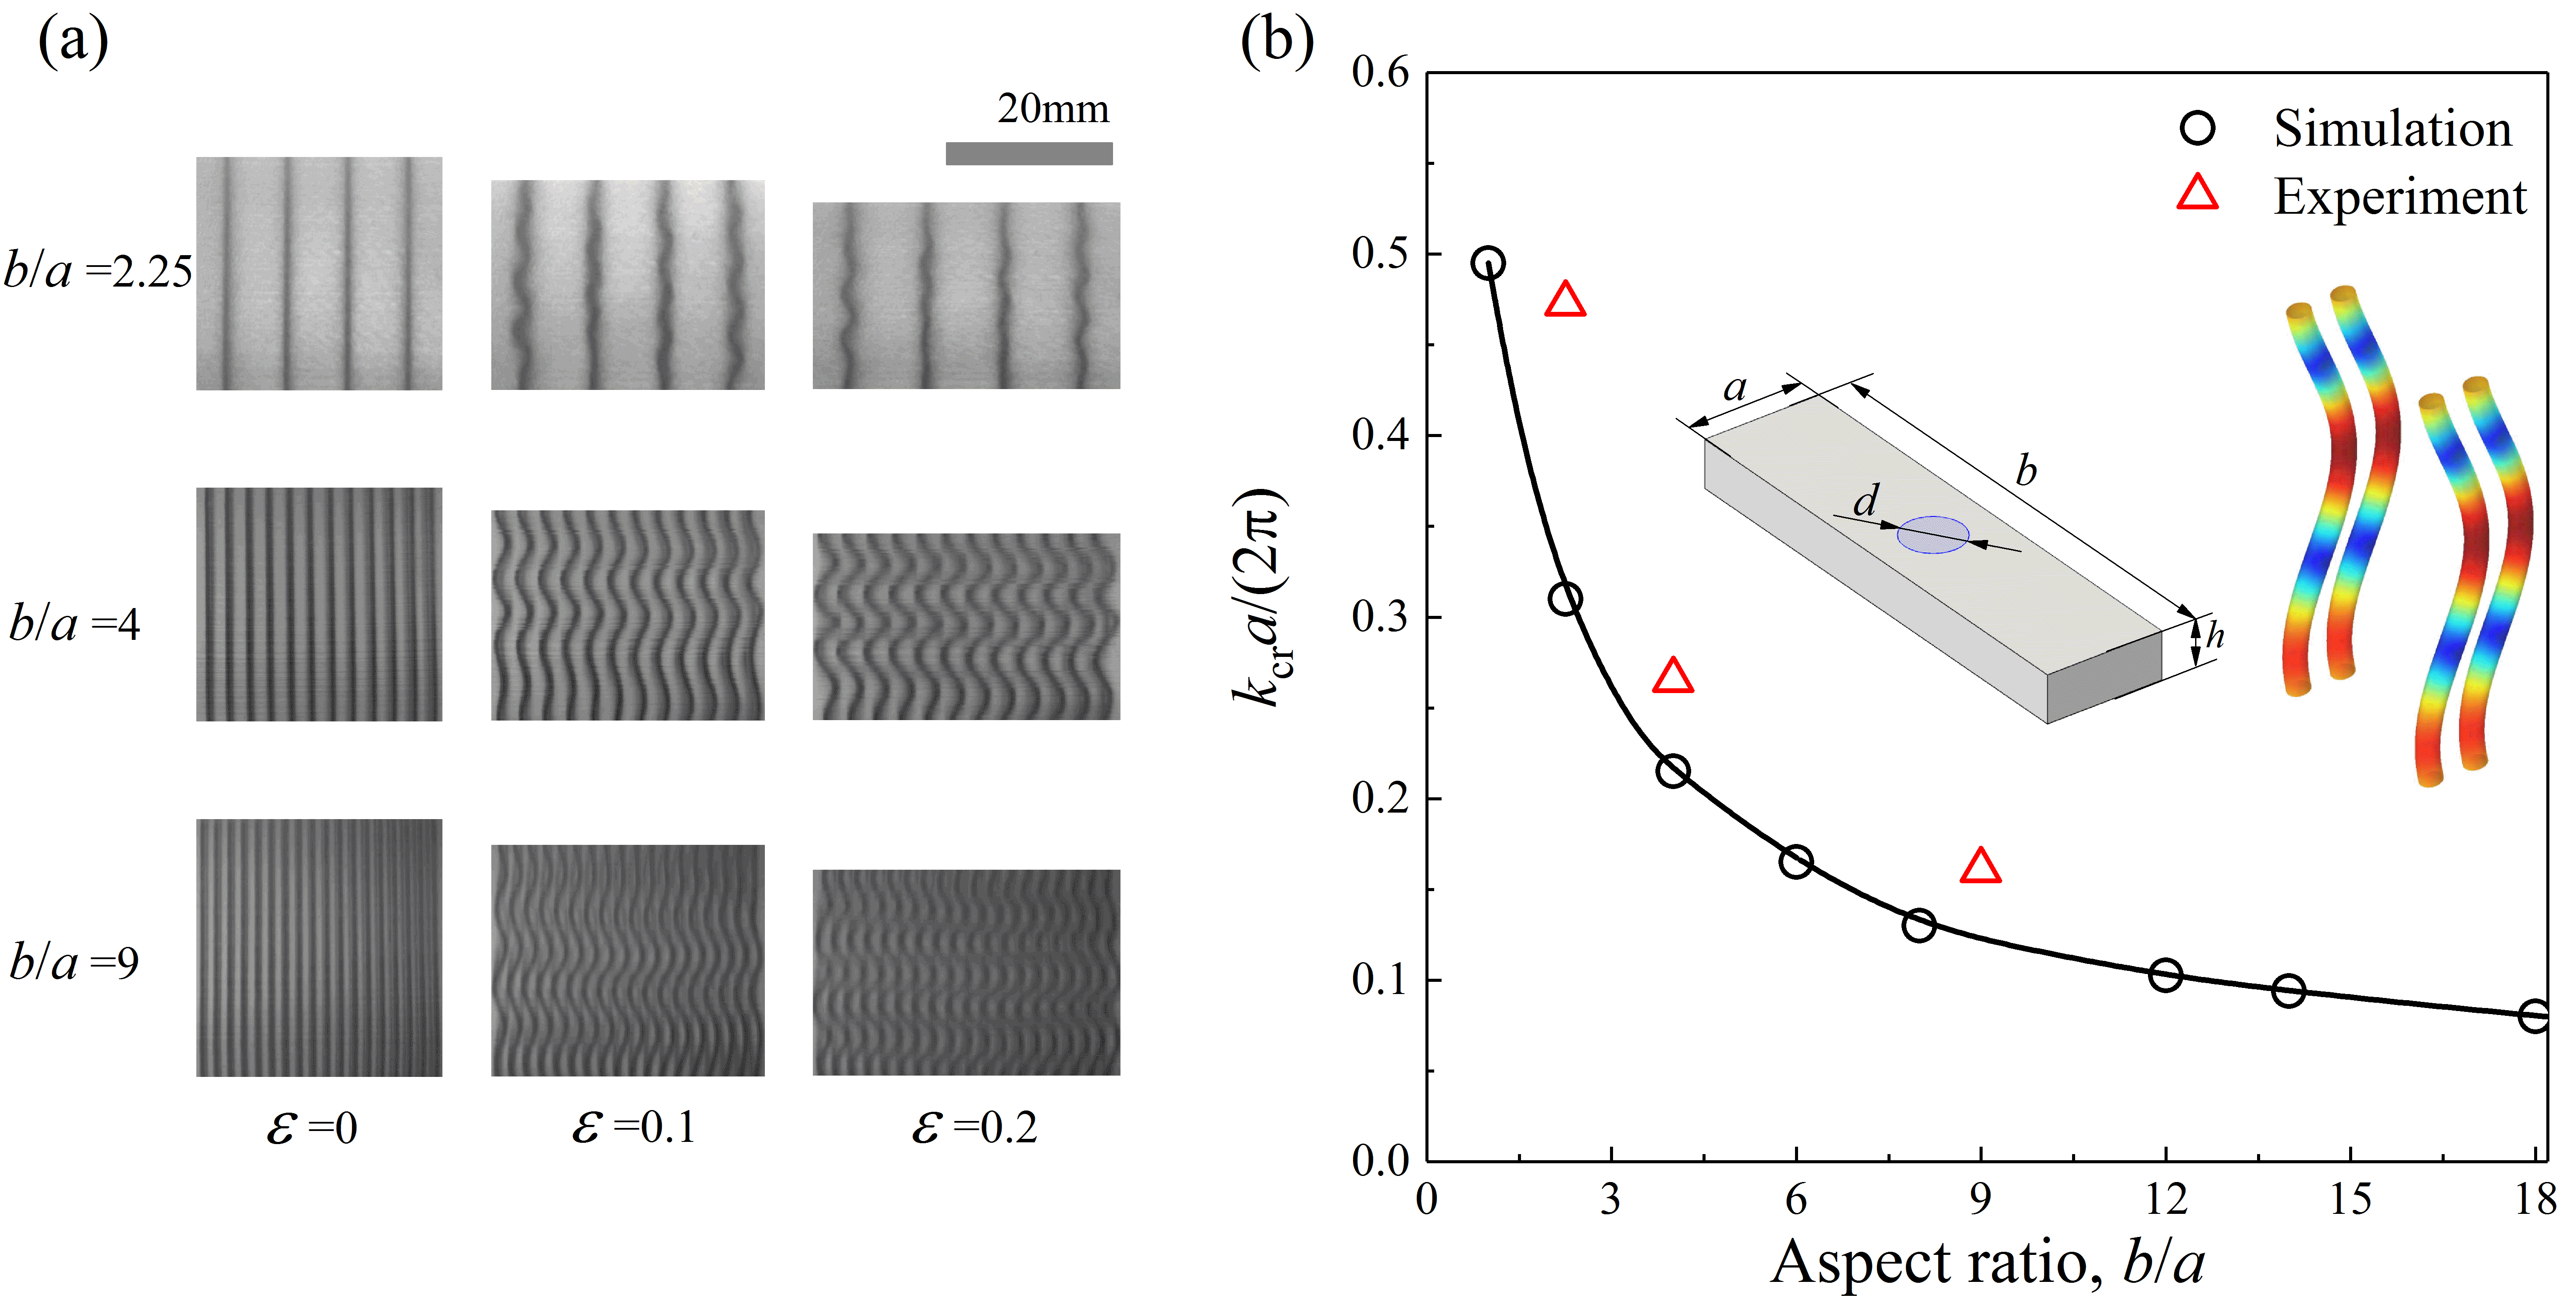 Journal Club for August 2019: Instabilities in Soft